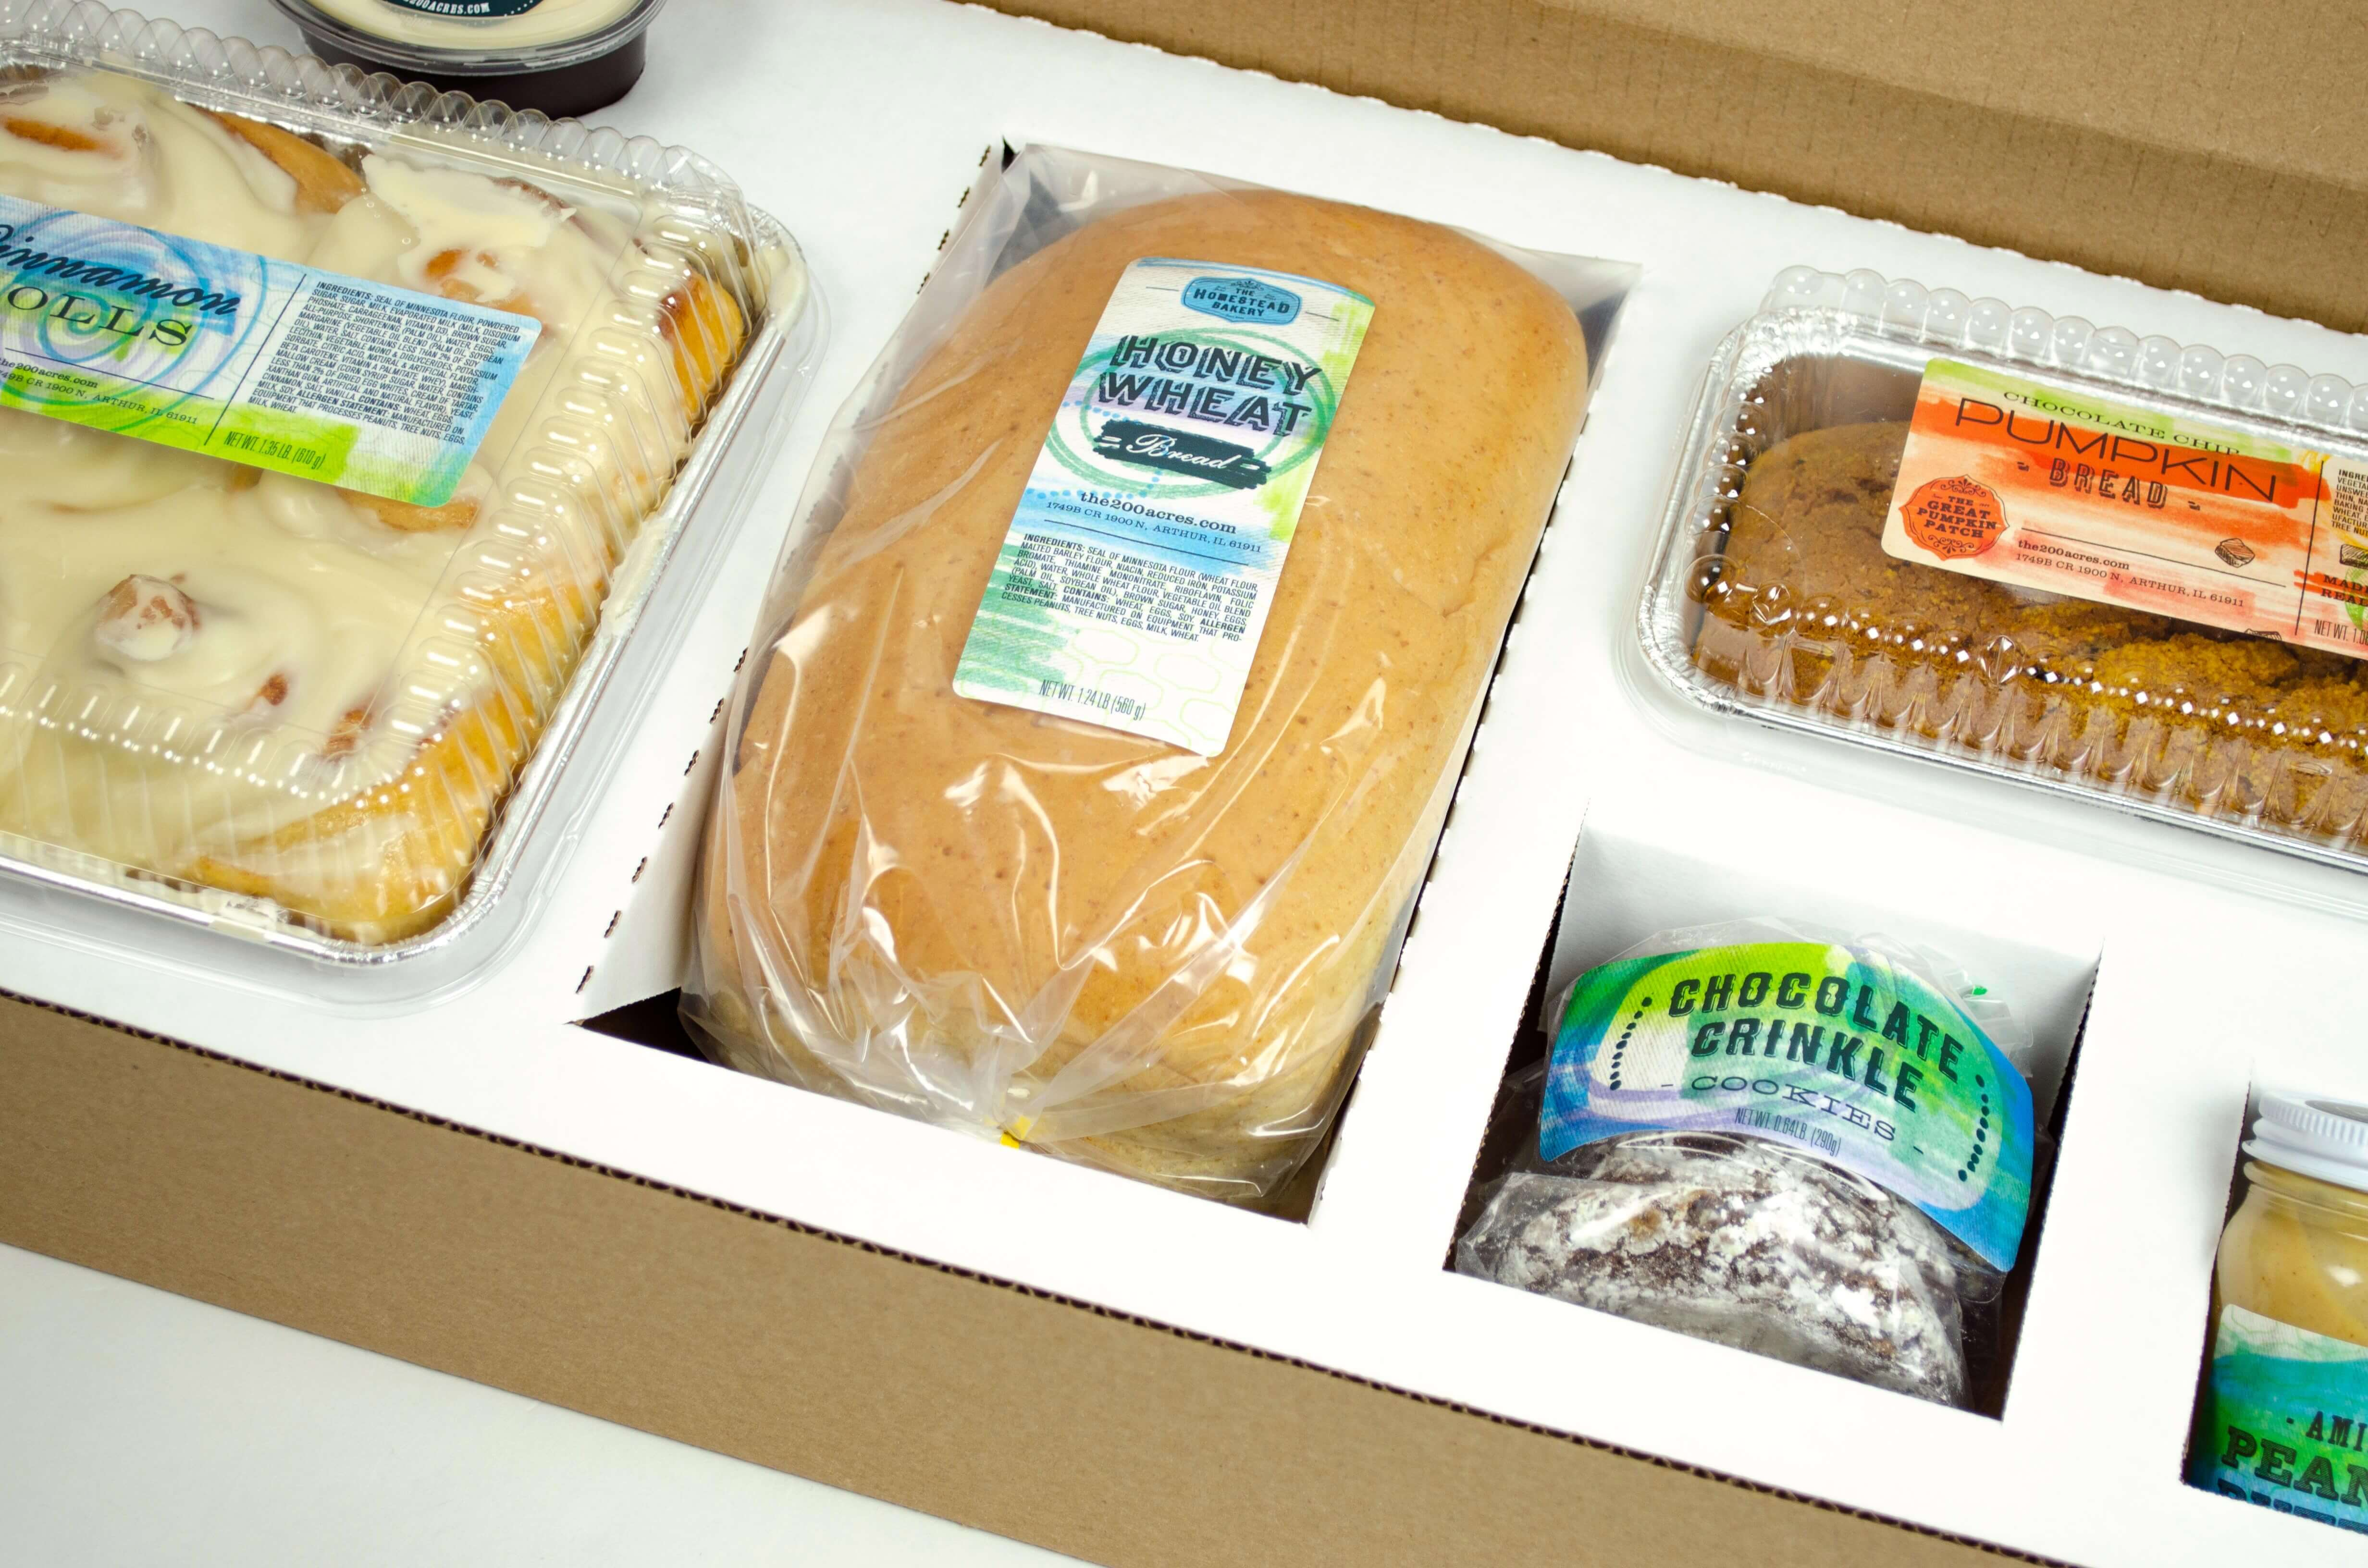 The Great Pumpkin Patch - The Homestead Bakery Packaging